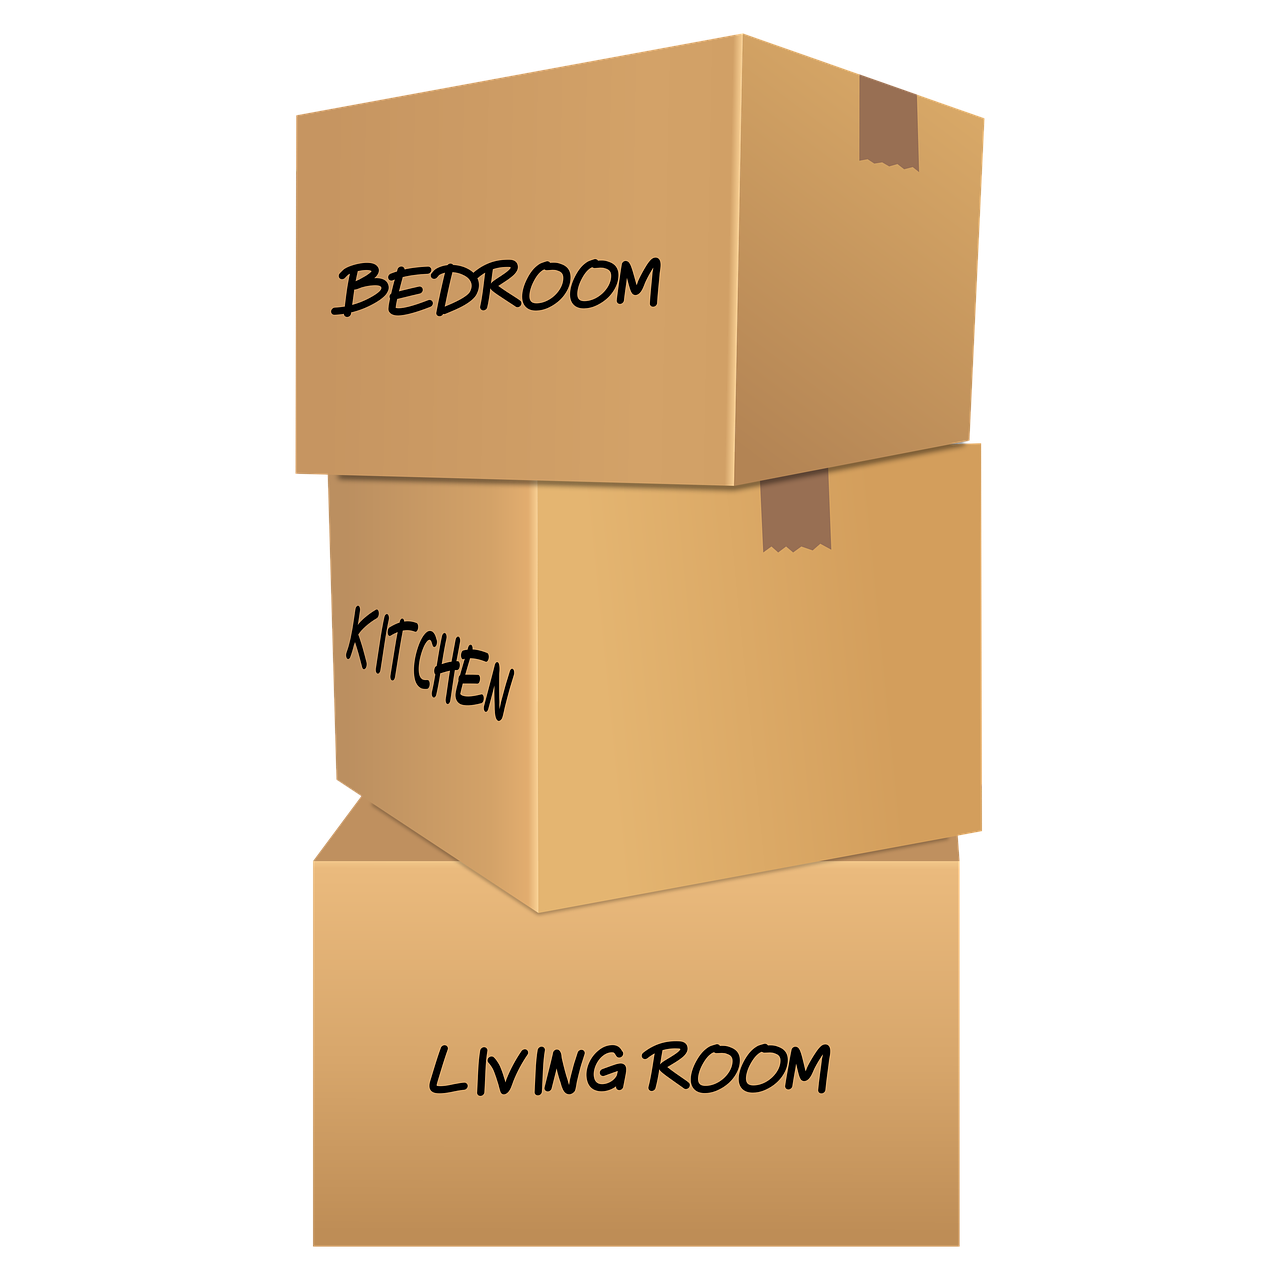 Moving Boxes Carton Boxes  - gracheli / Pixabay